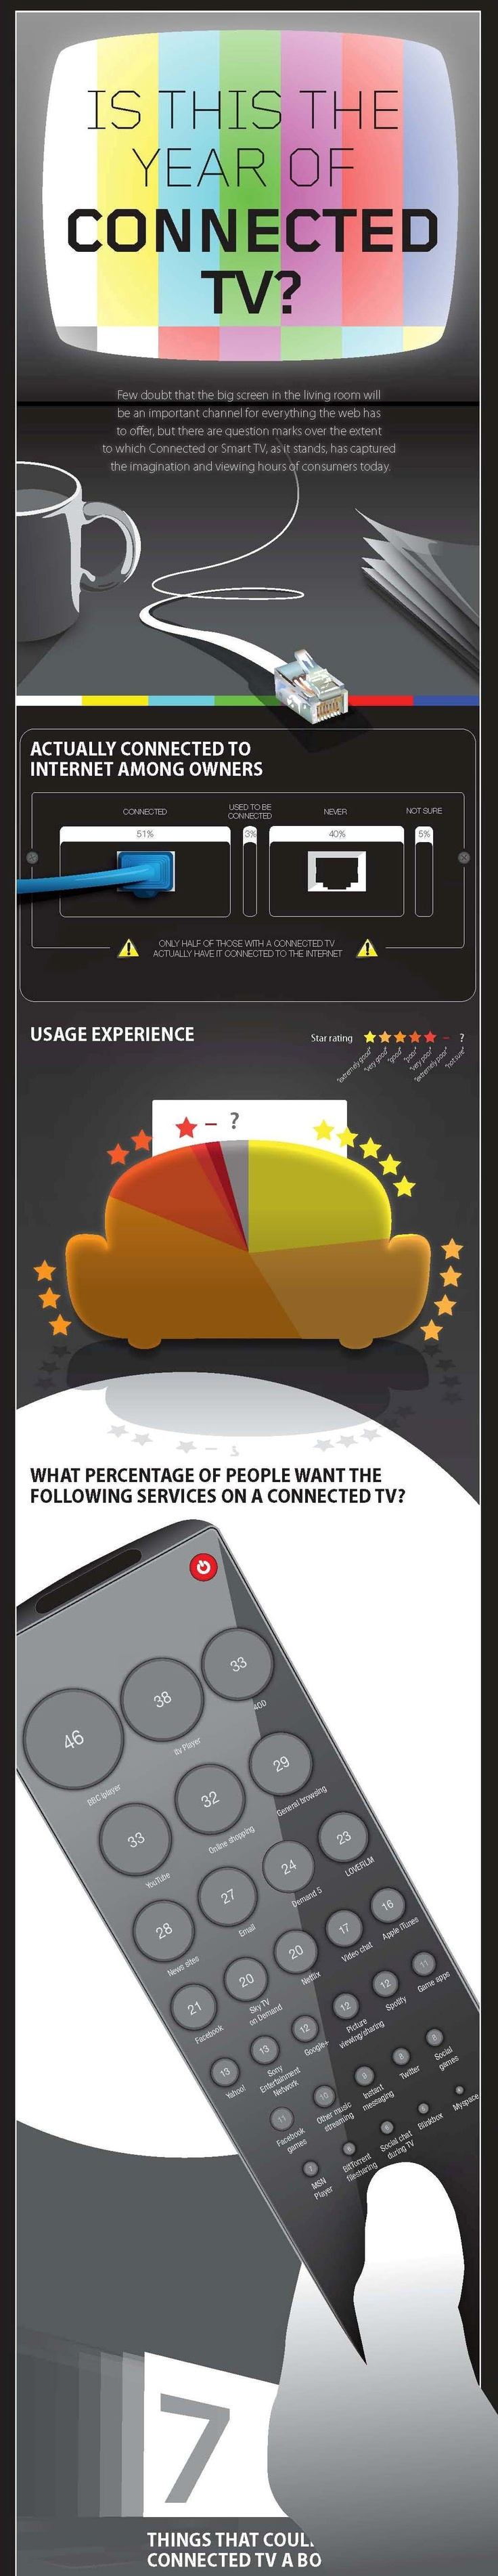 The year of connected TV